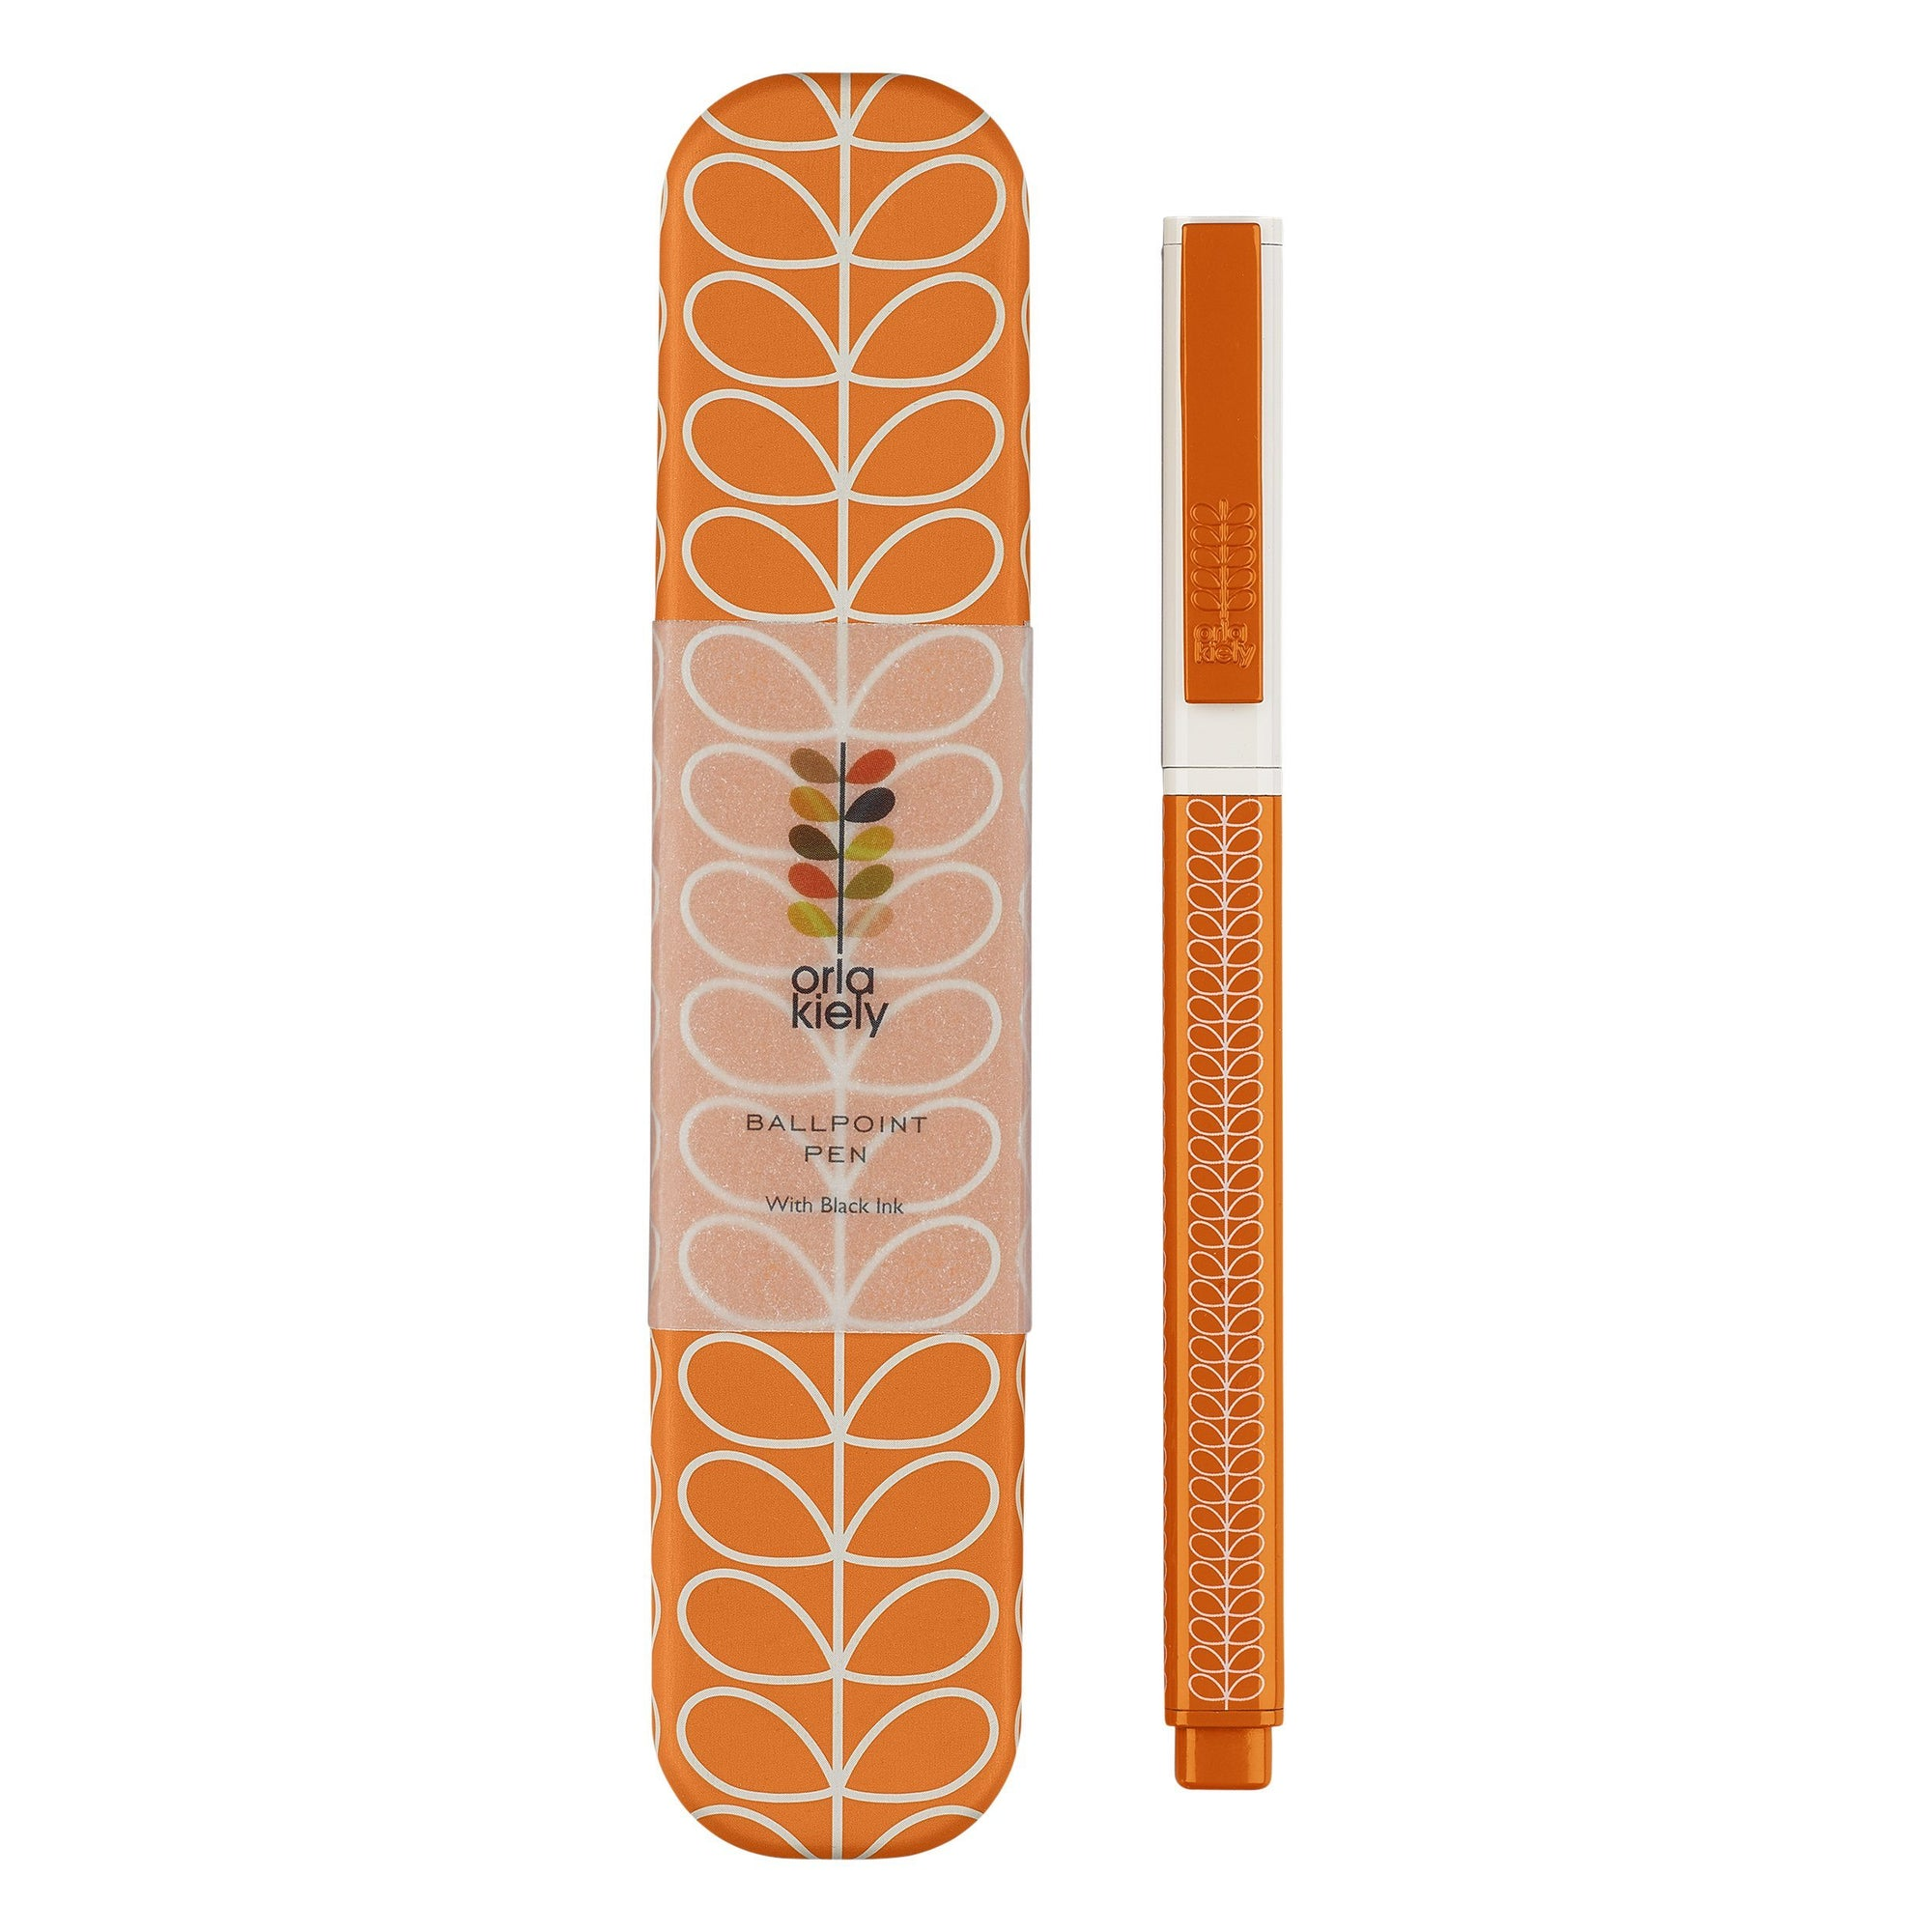 Orla kiely Linear Stem Ballpoint Pen in Orange - BouChic